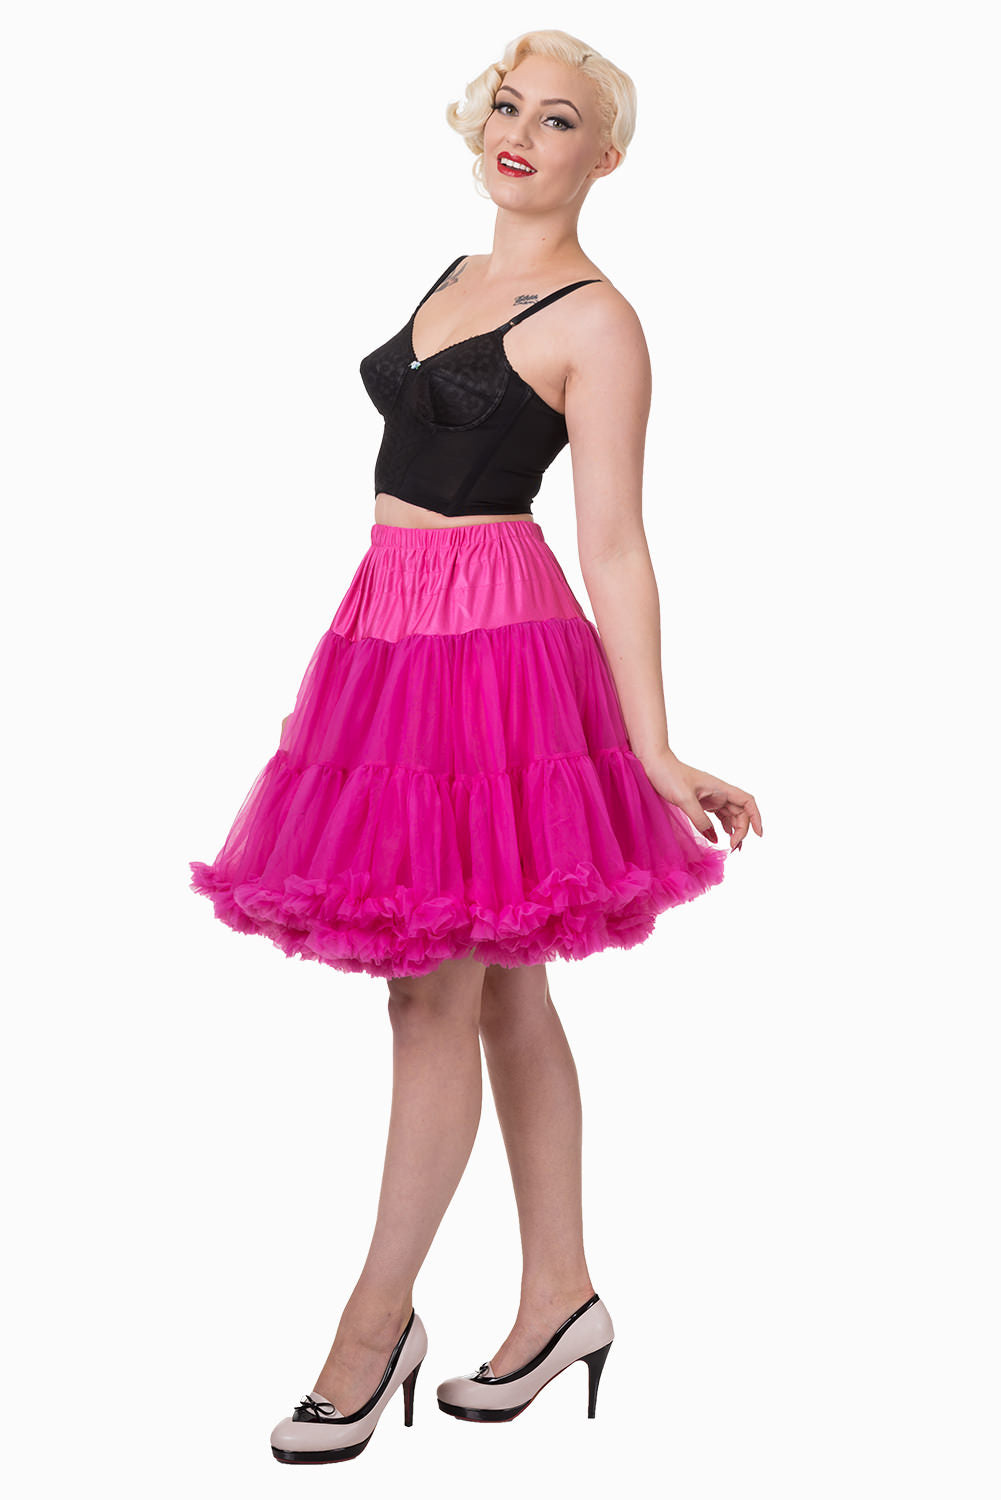 Walkabout Petticoat in Hot Pink - Natasha Marie Clothing